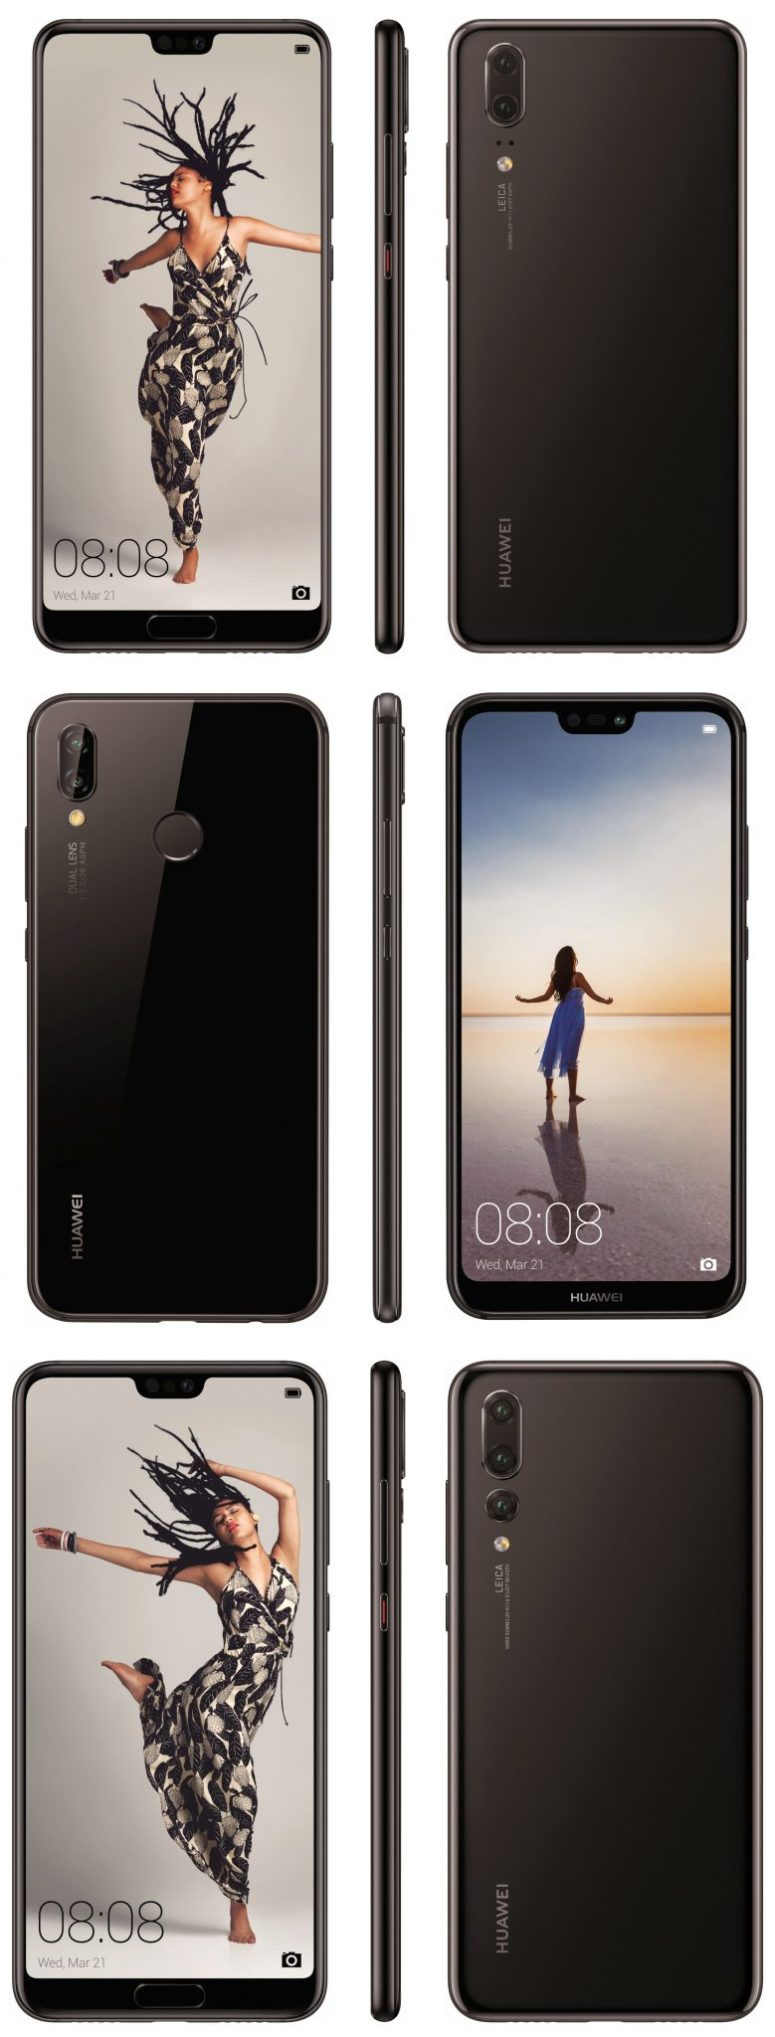 Huawei P20 Lite, P20 and P20 Pro